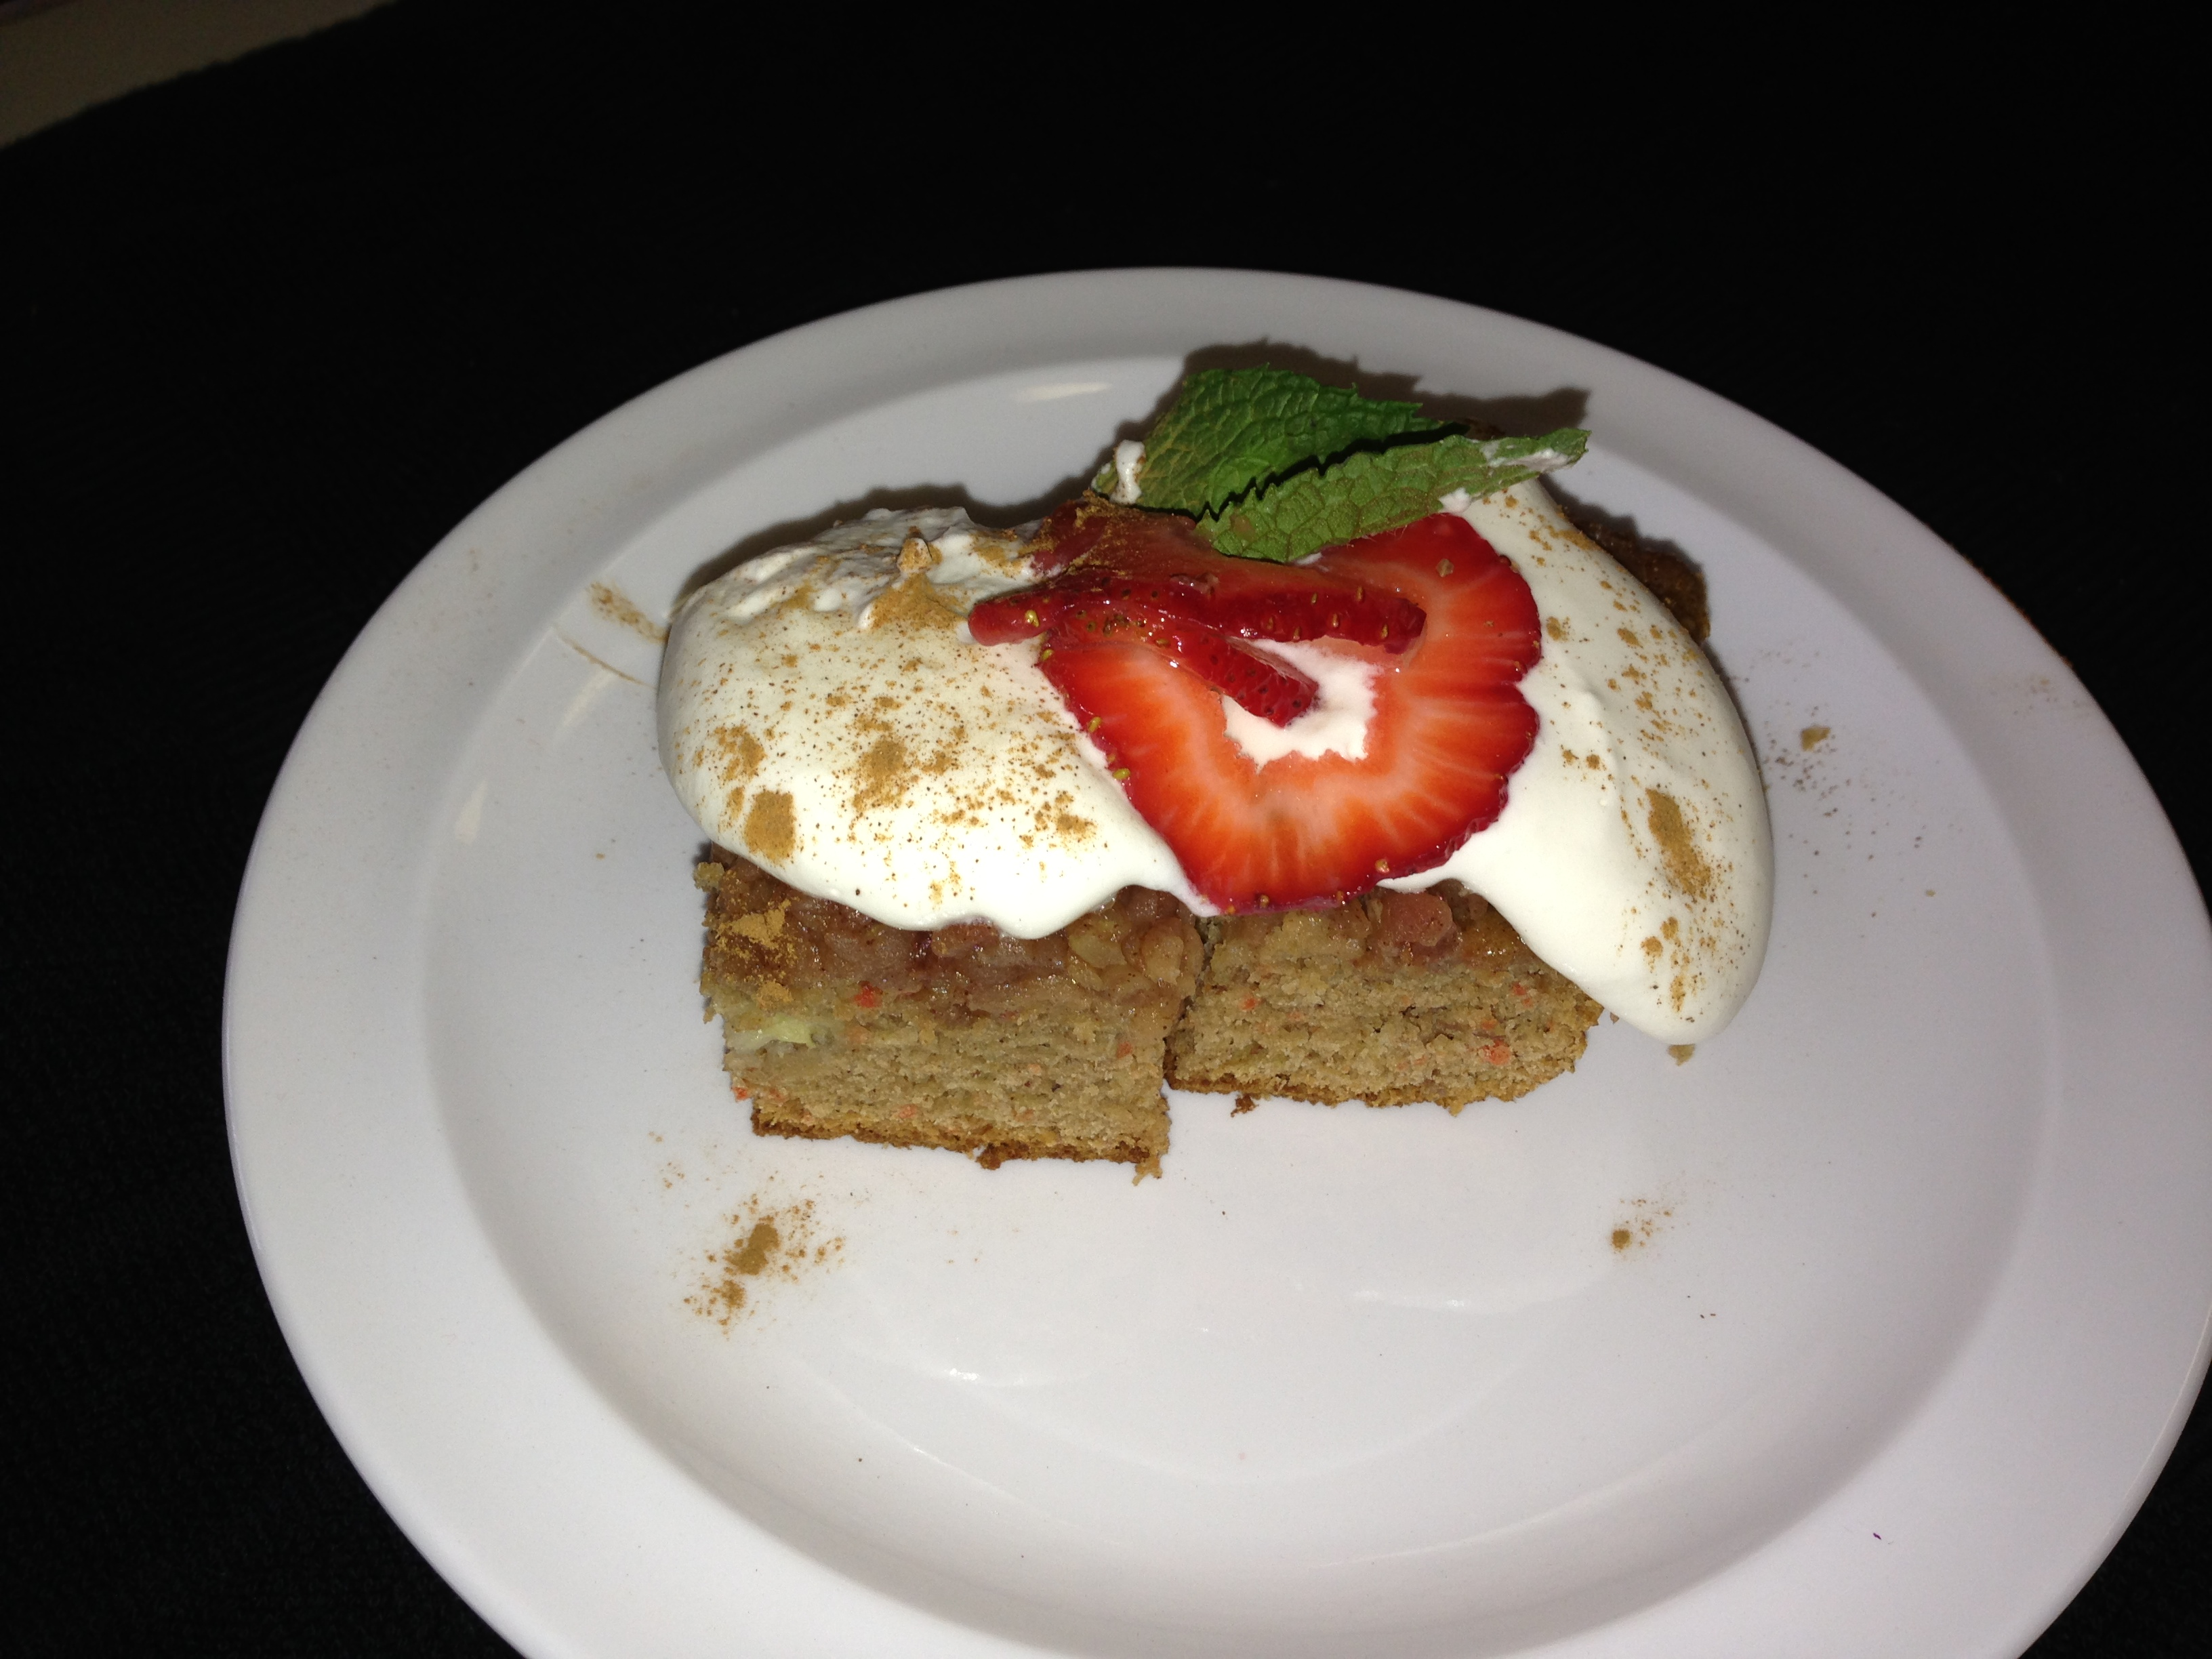 Saladmaster carrot cake recipe